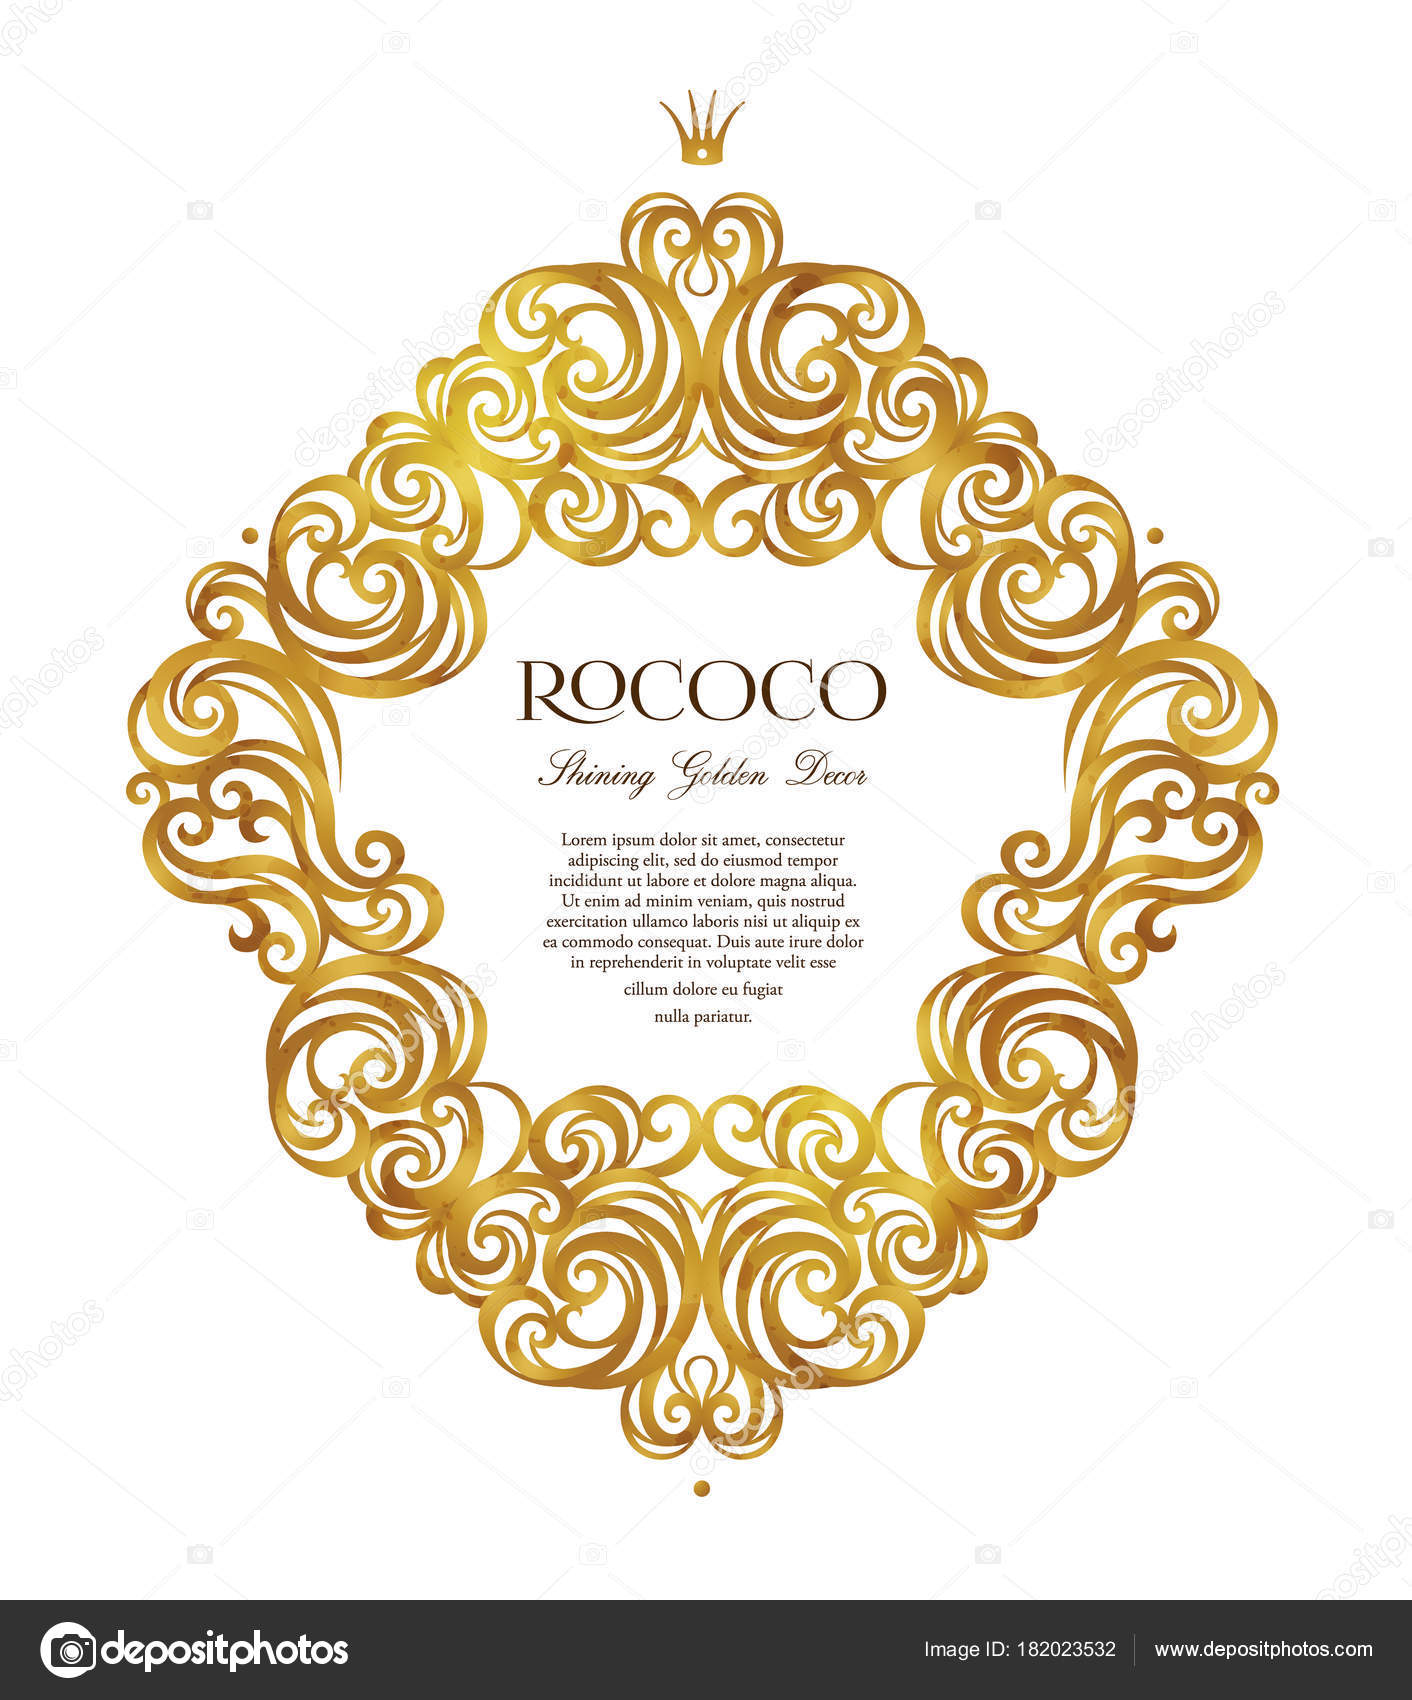 e60a7a037274 Vector vintage frame  ornate floral vignette for design template. Victorian  style gold element. Rococo decoration. Arabic golden motifs.